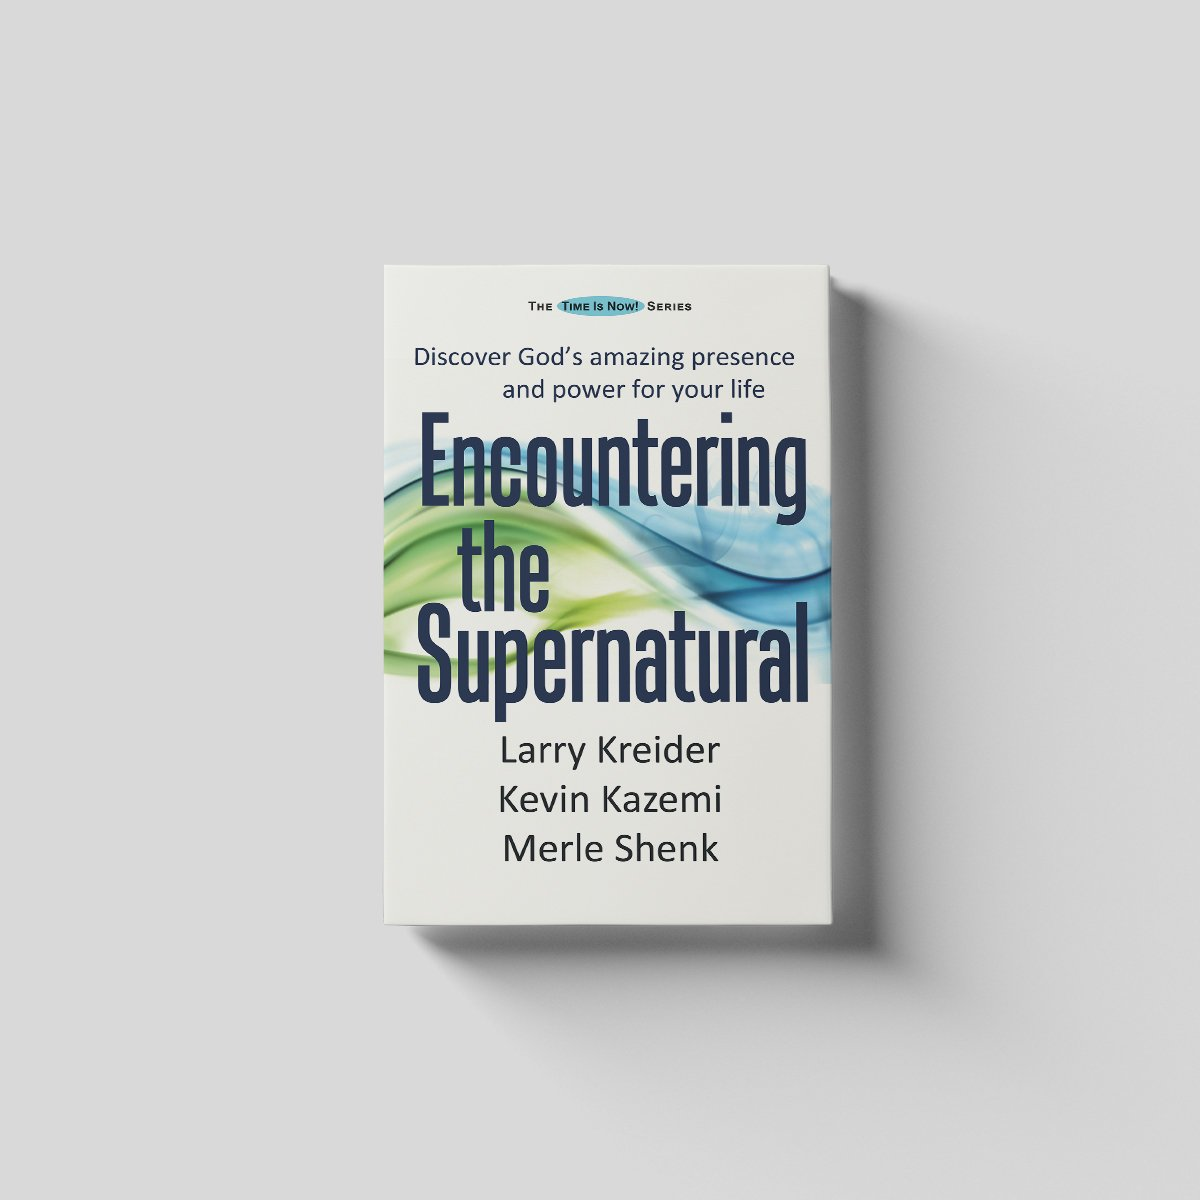 Encountering the Supernatural book cover